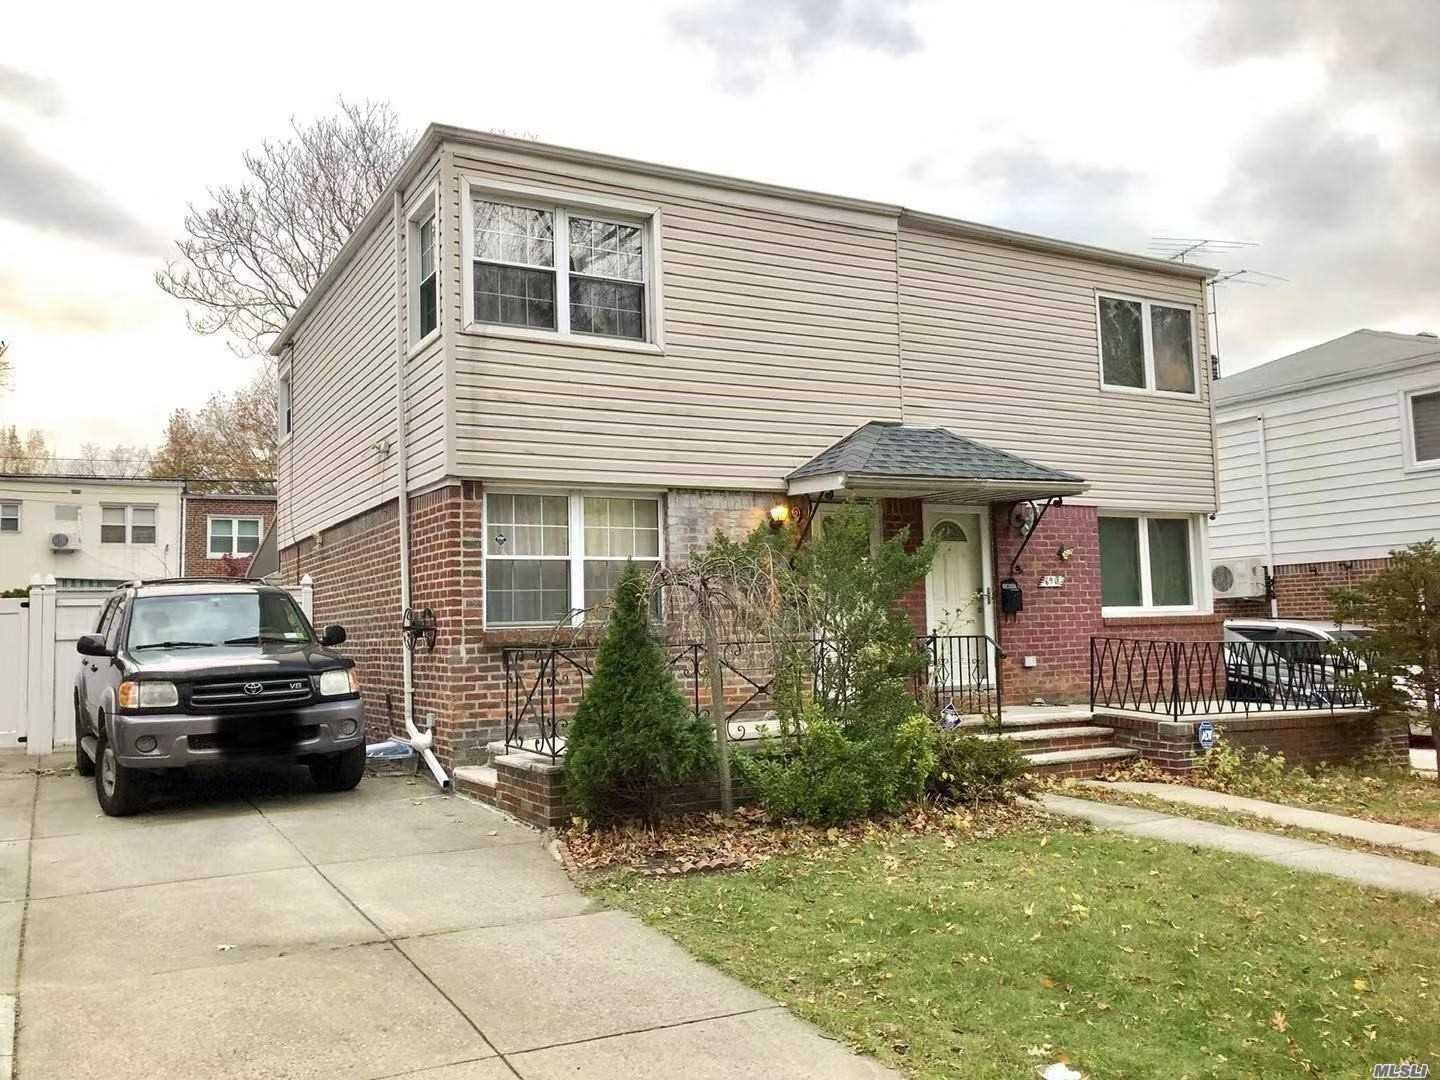 26 School Dist, Next To The Cunningham Park, hiking course in the front, very quiet tree lined neighbor,  2Bedroom 1.55Bathrooms, Central Air, Slide Door To Backyard, Private Driveway, Finished Basement With 0.5 Bathroom, Washer And Dryer